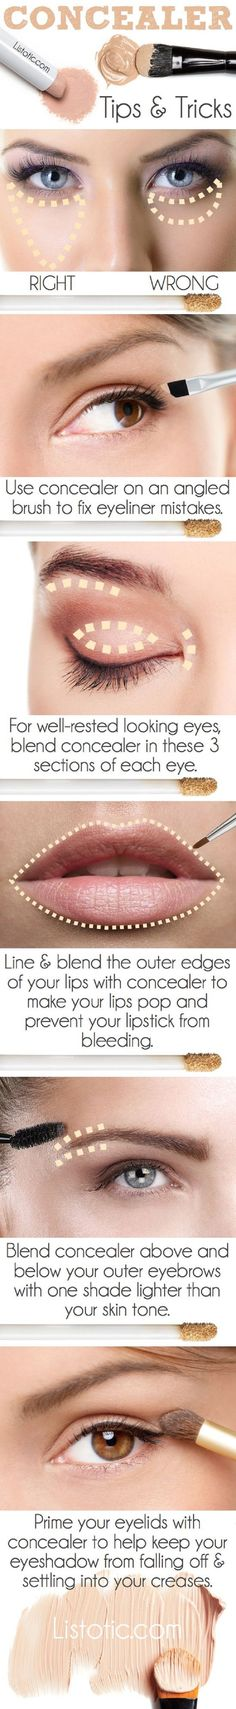 How to use your favorite cruelty-free concealer. #BeCrueltyFree